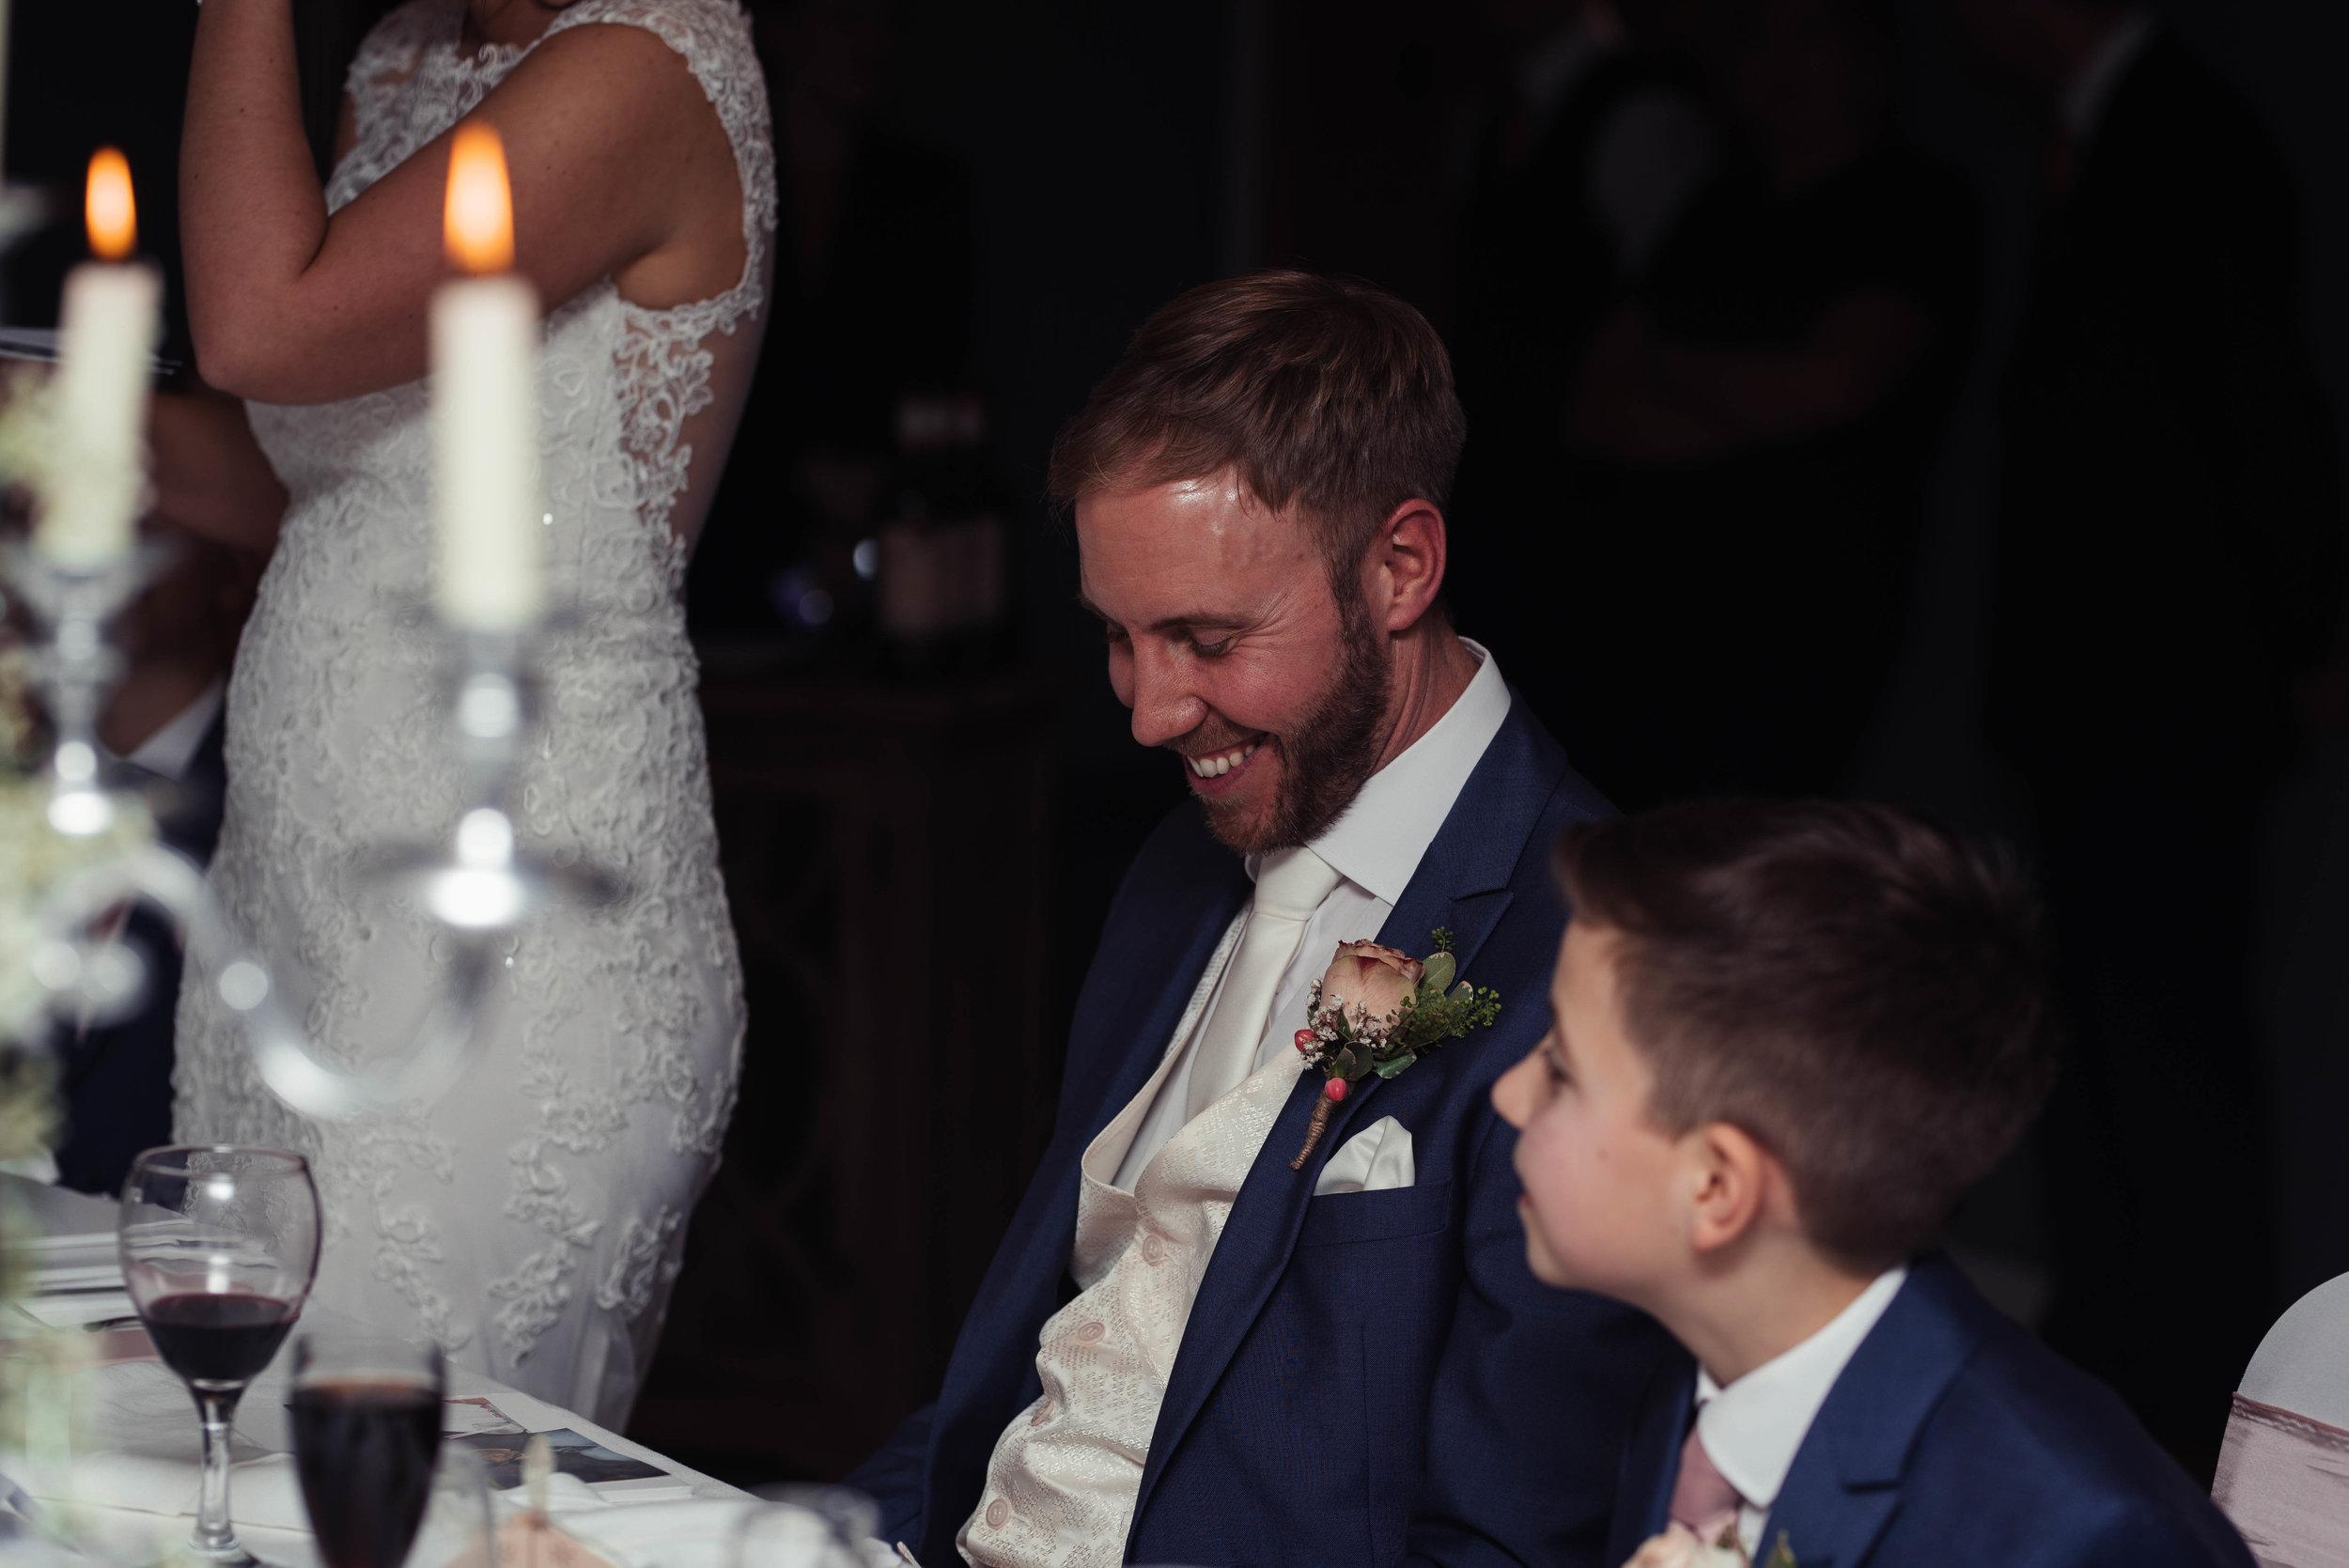 The groom sits with his son while his bride delivers her speech